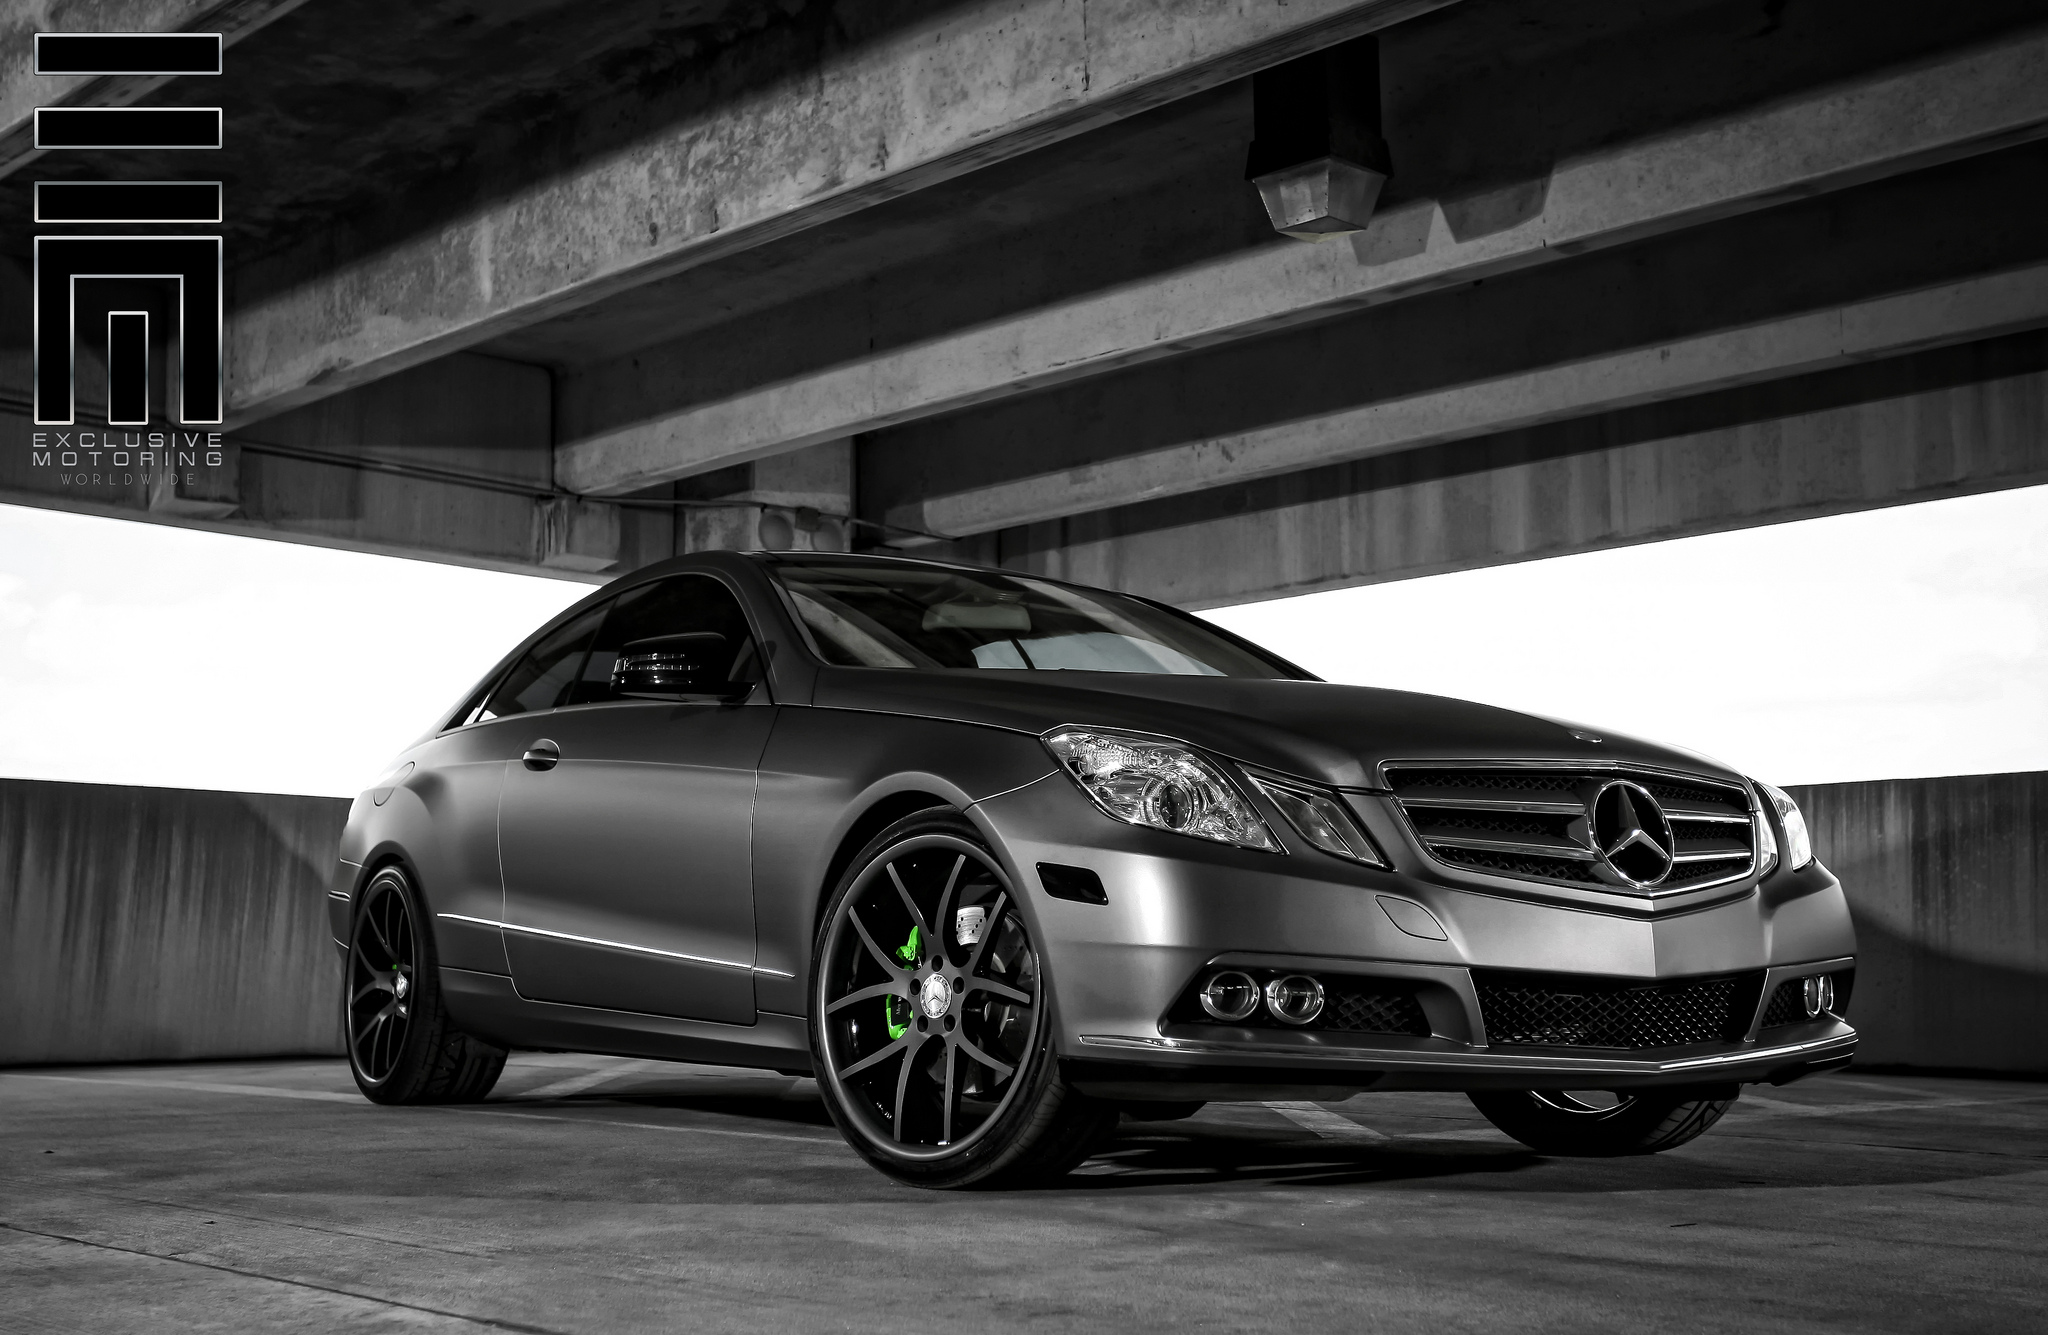 Giovanna Monza Graphite Grey on Mercedes Benz E-class Coupe